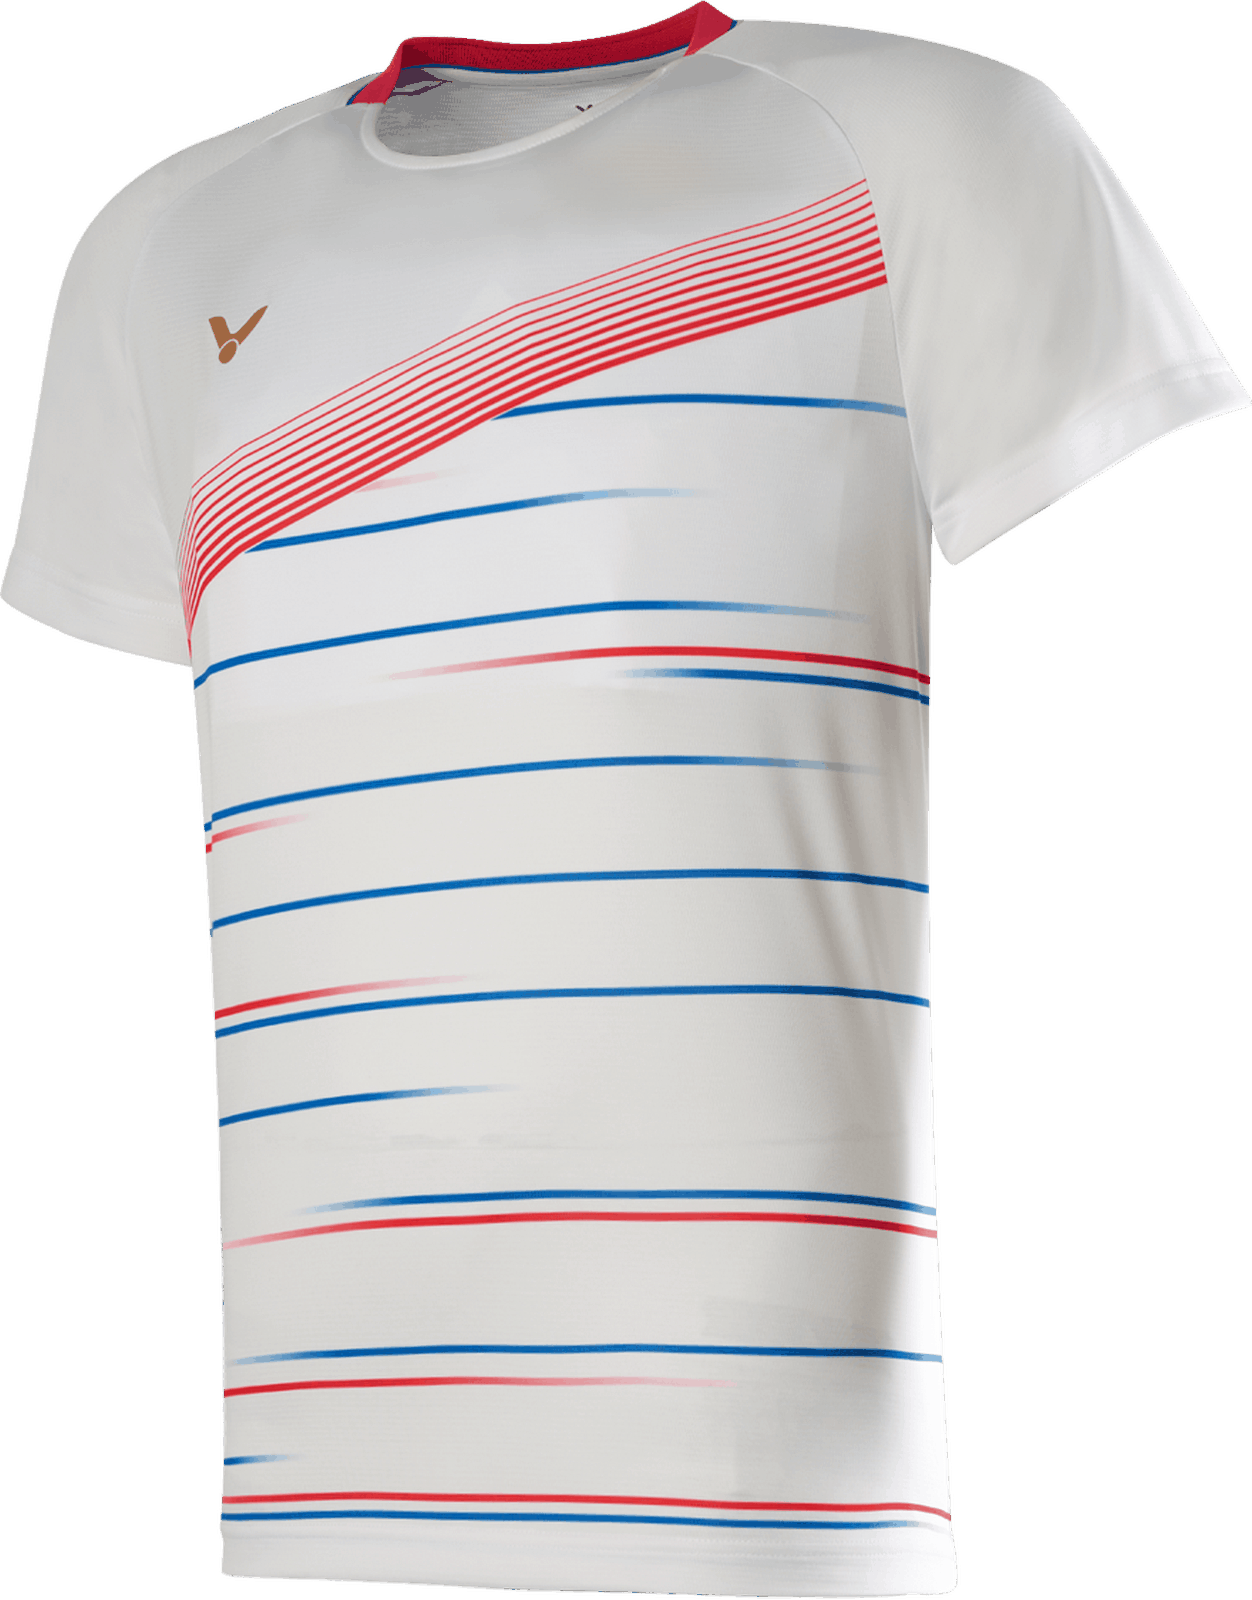 VICTOR T-Shirt T-00003 A